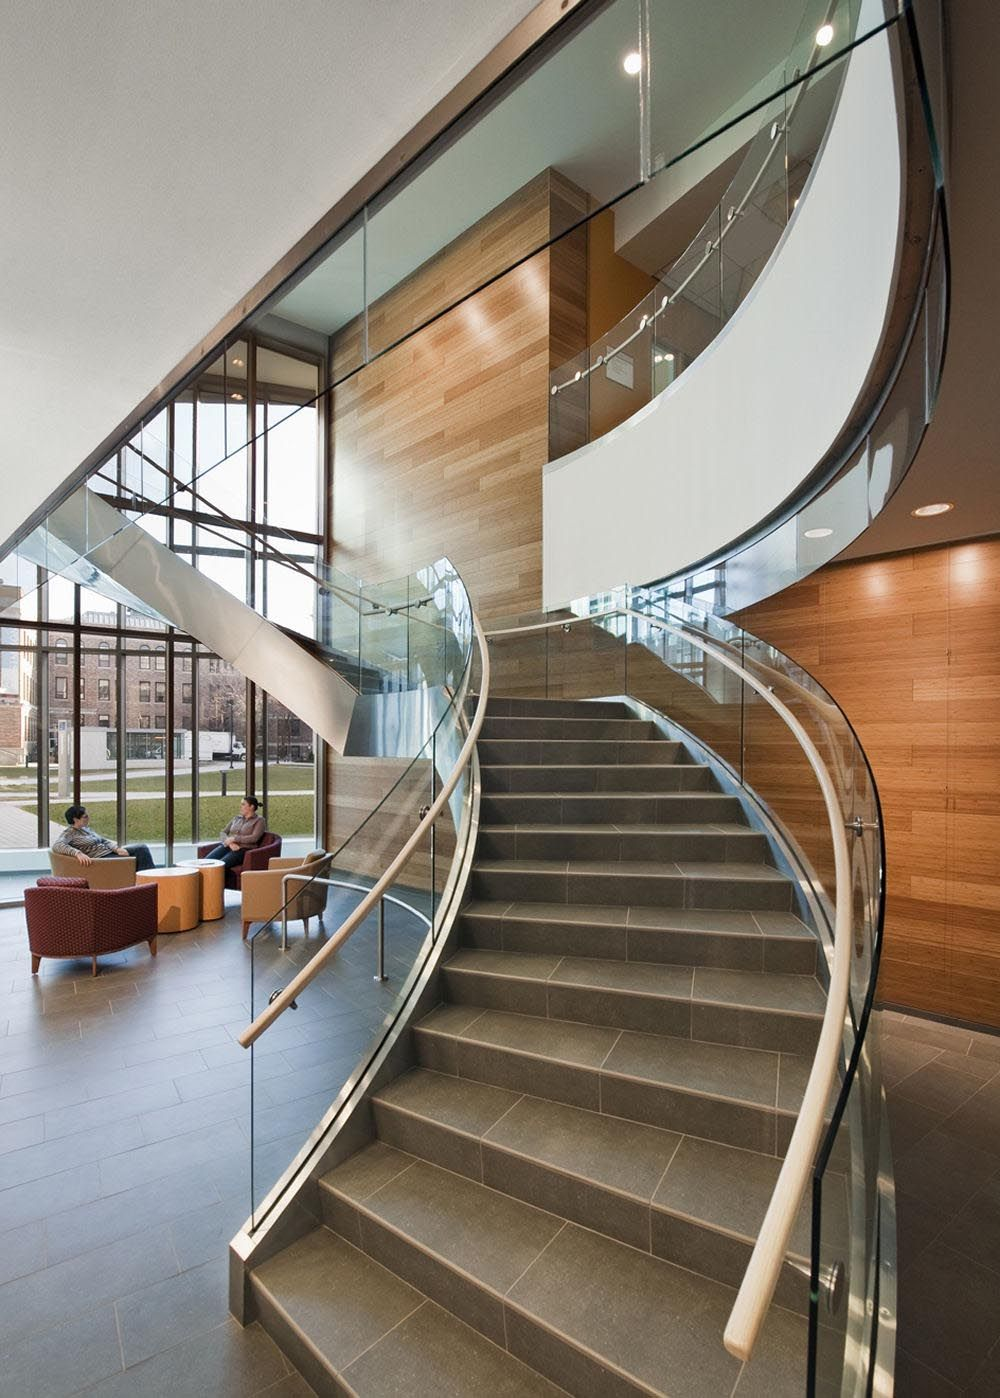 Sustainable business school design in boston united for Curved staircase design plans